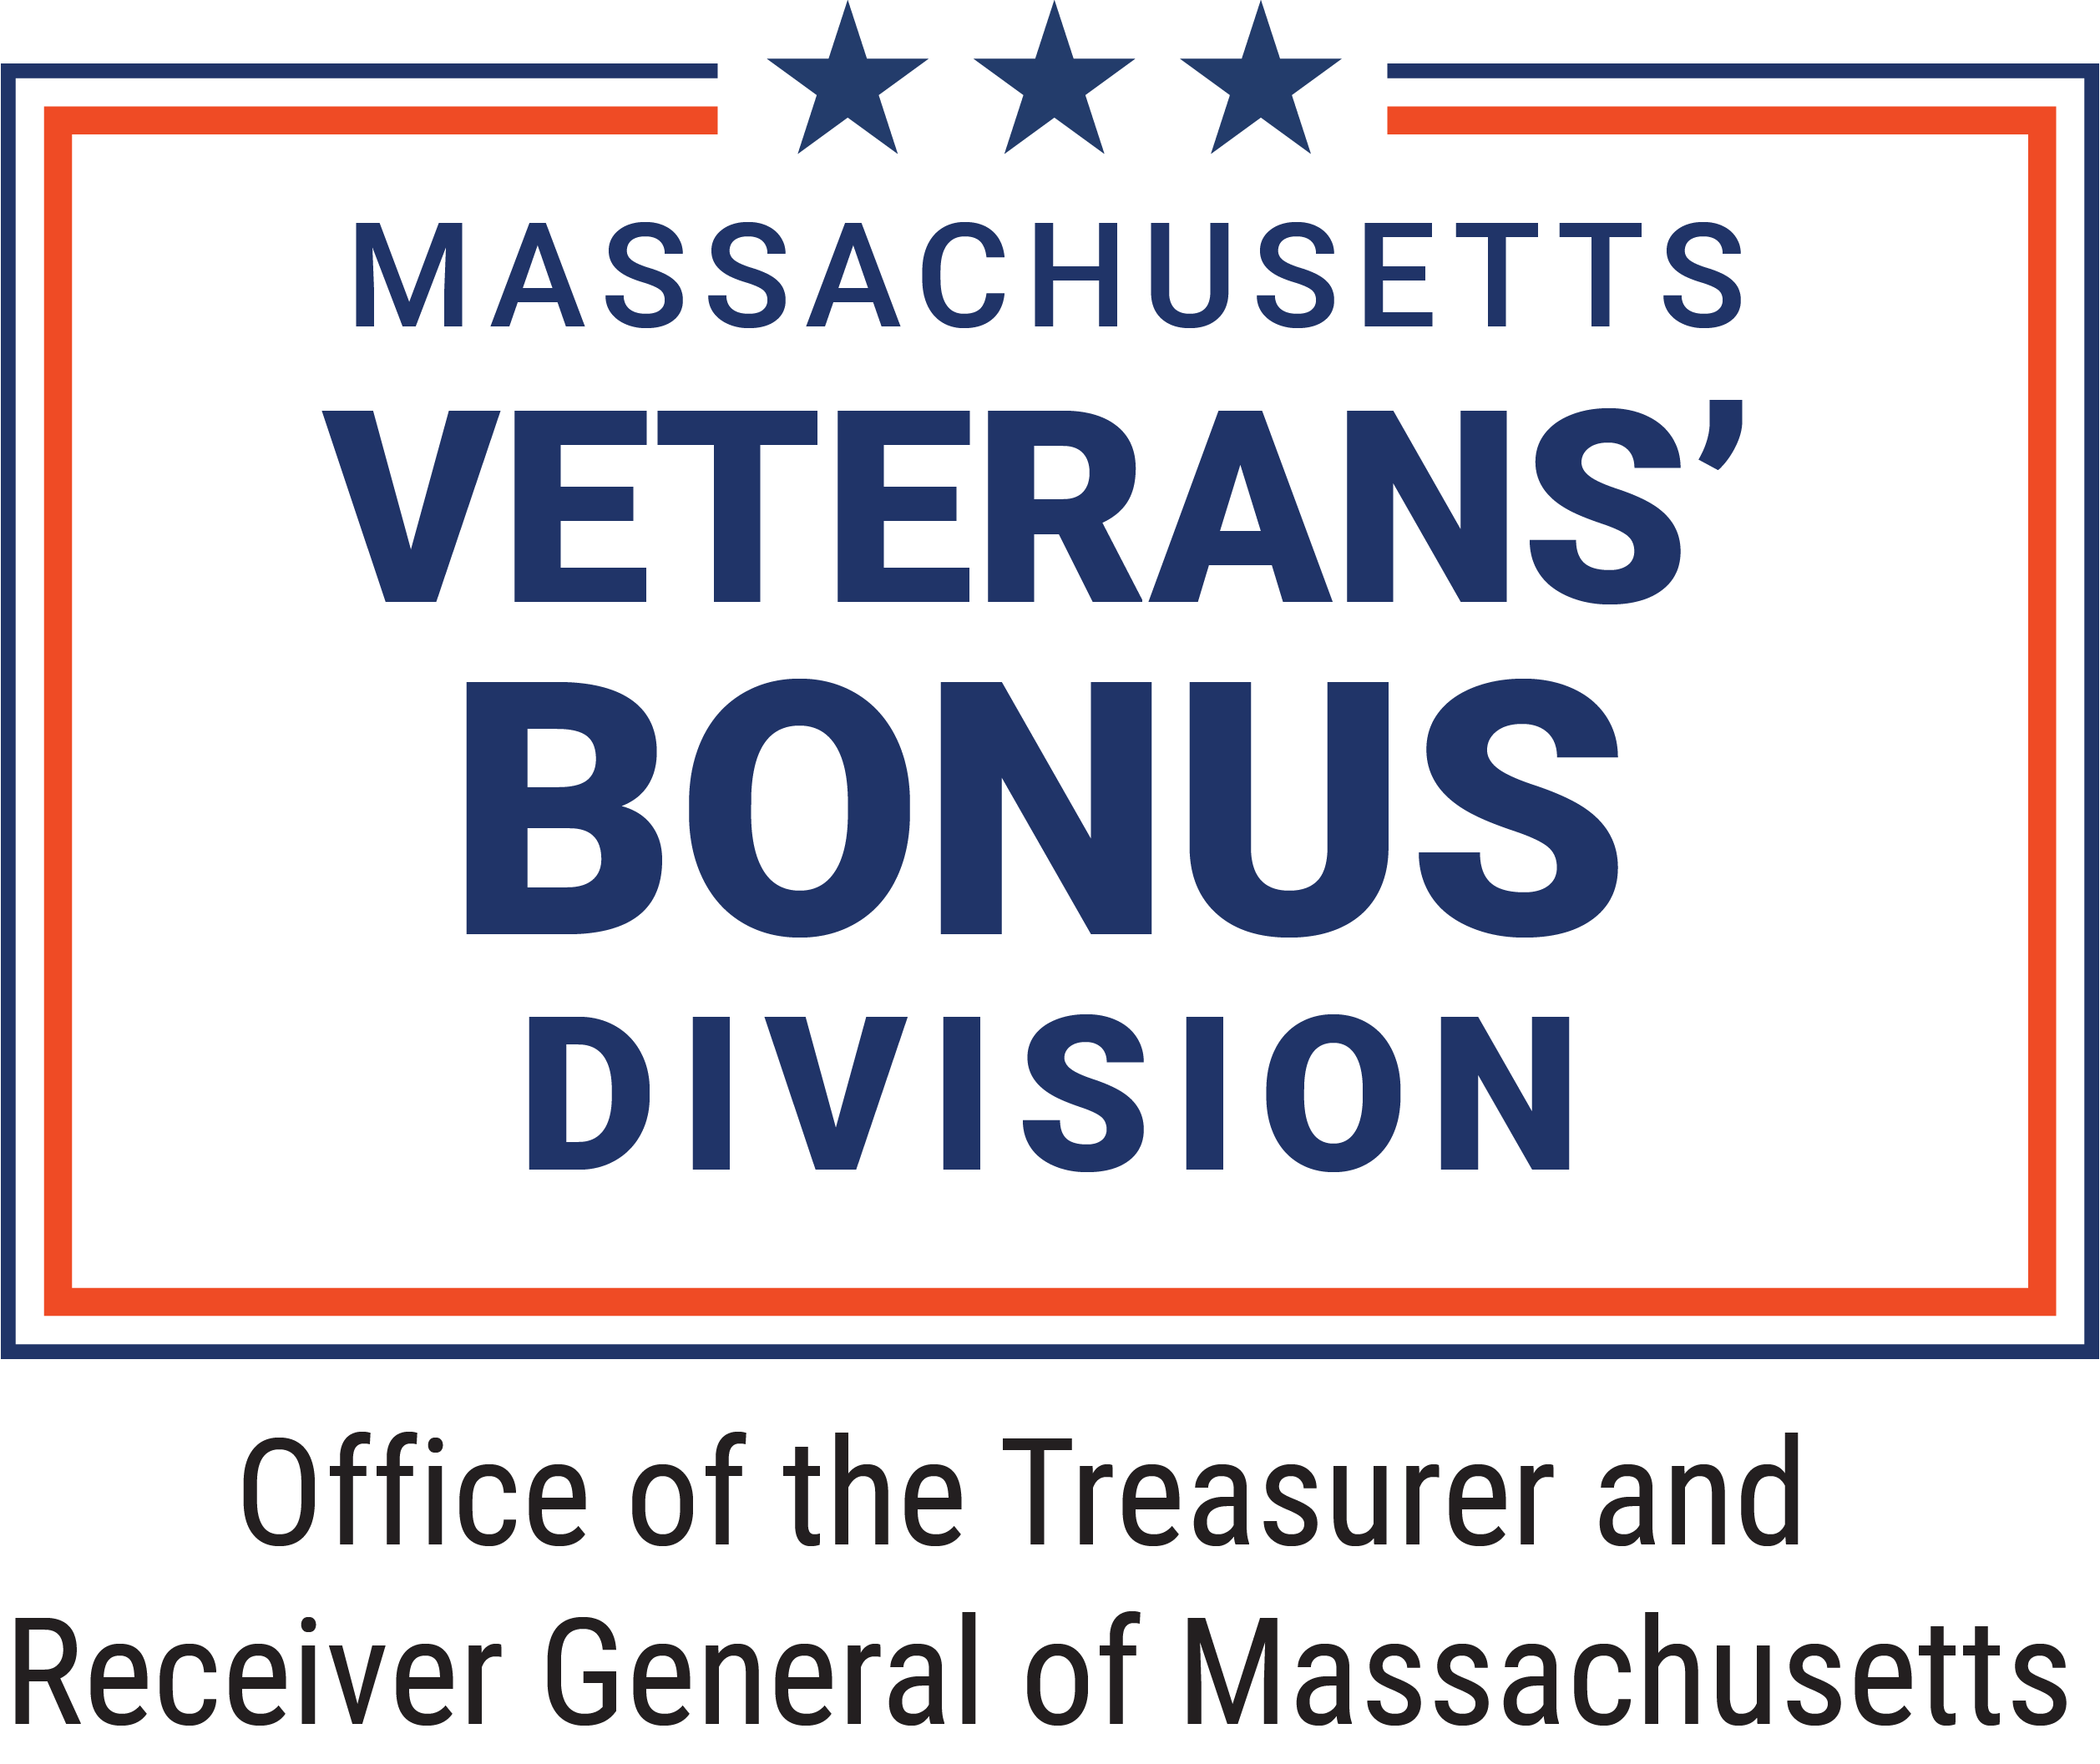 Logo for Massachusetts Veterans' Bonus Division